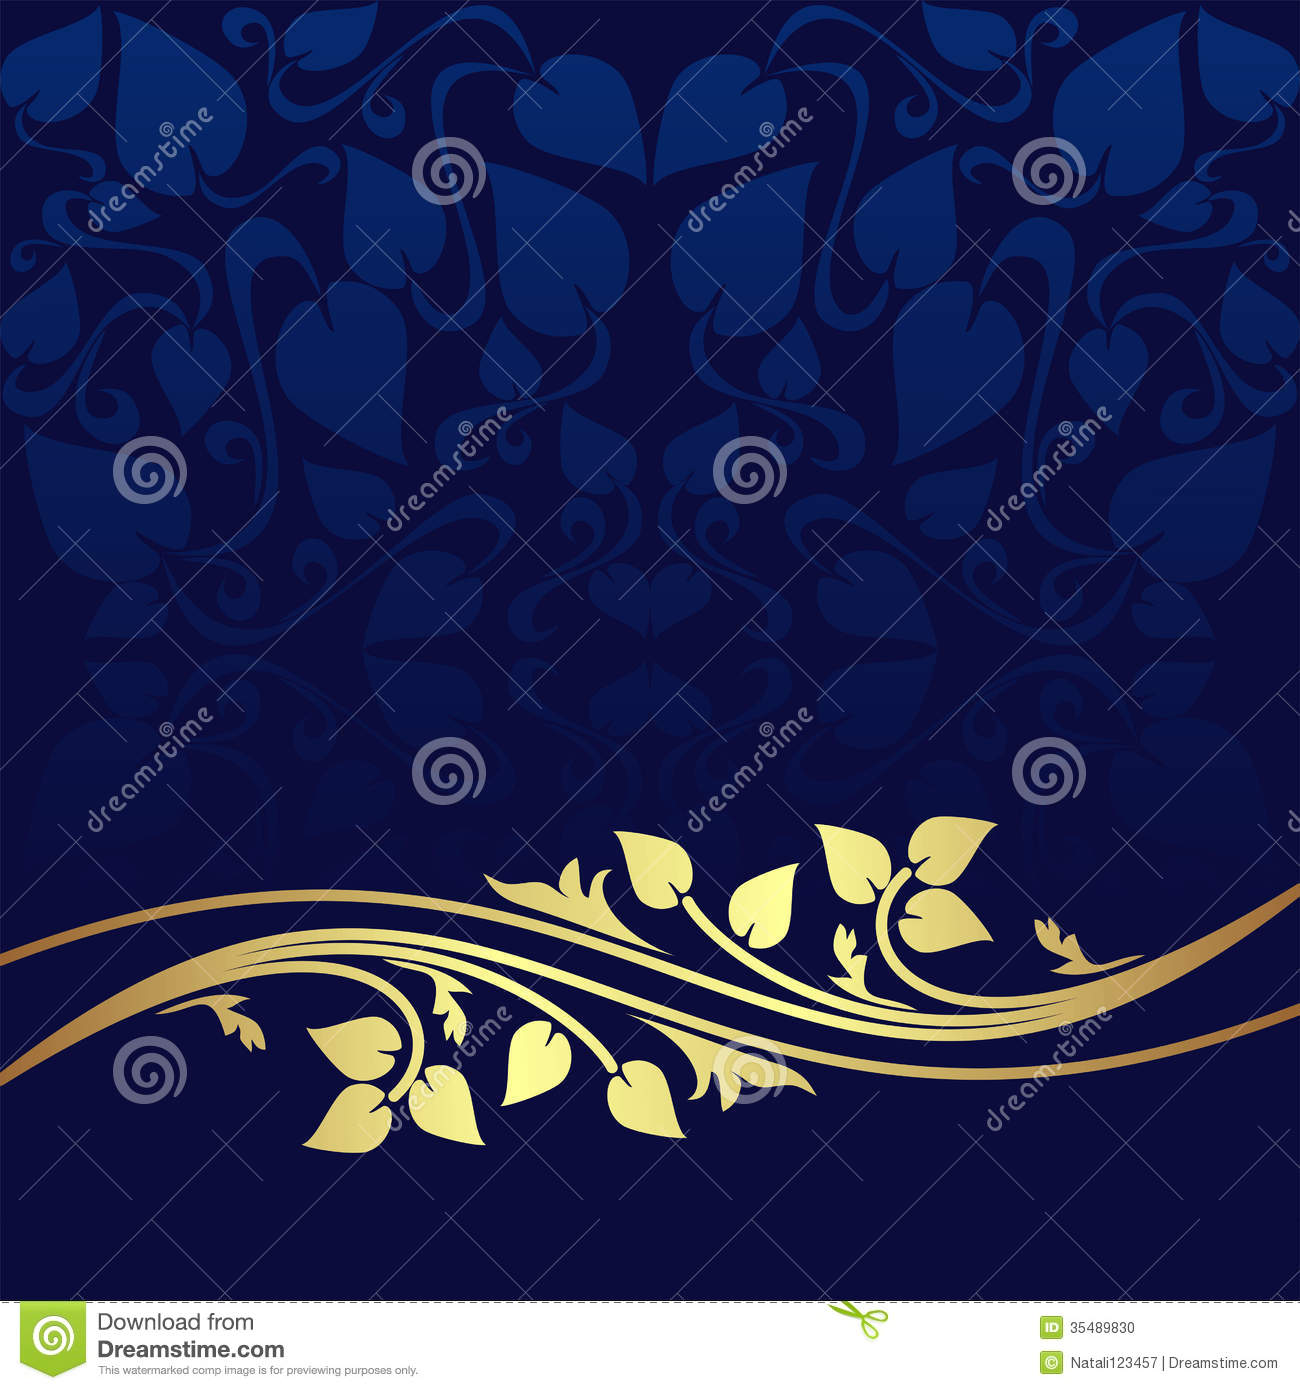 Navy Blue And Gold Wallpaper Gold backgroun 1300x1390